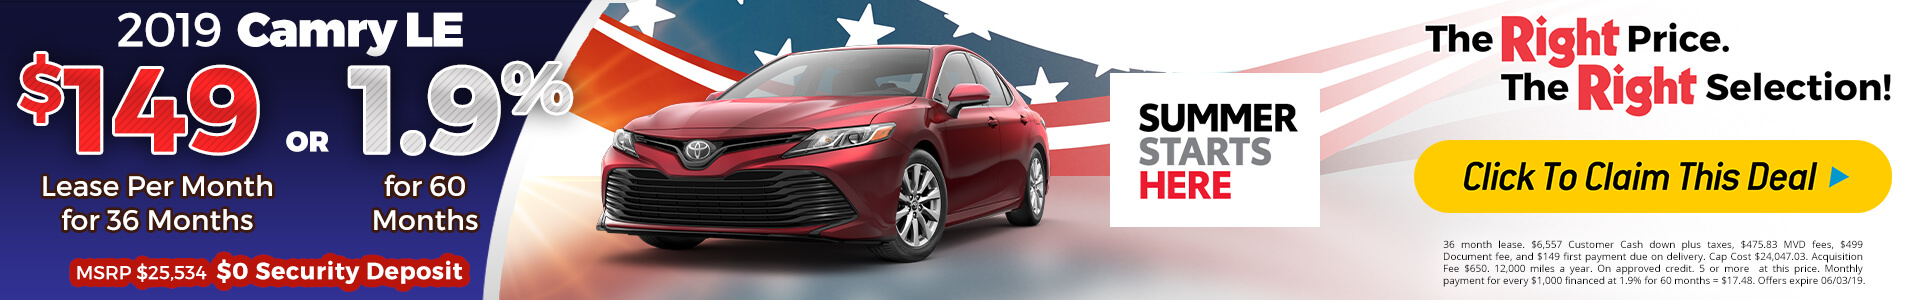 Camry - Lease for $149